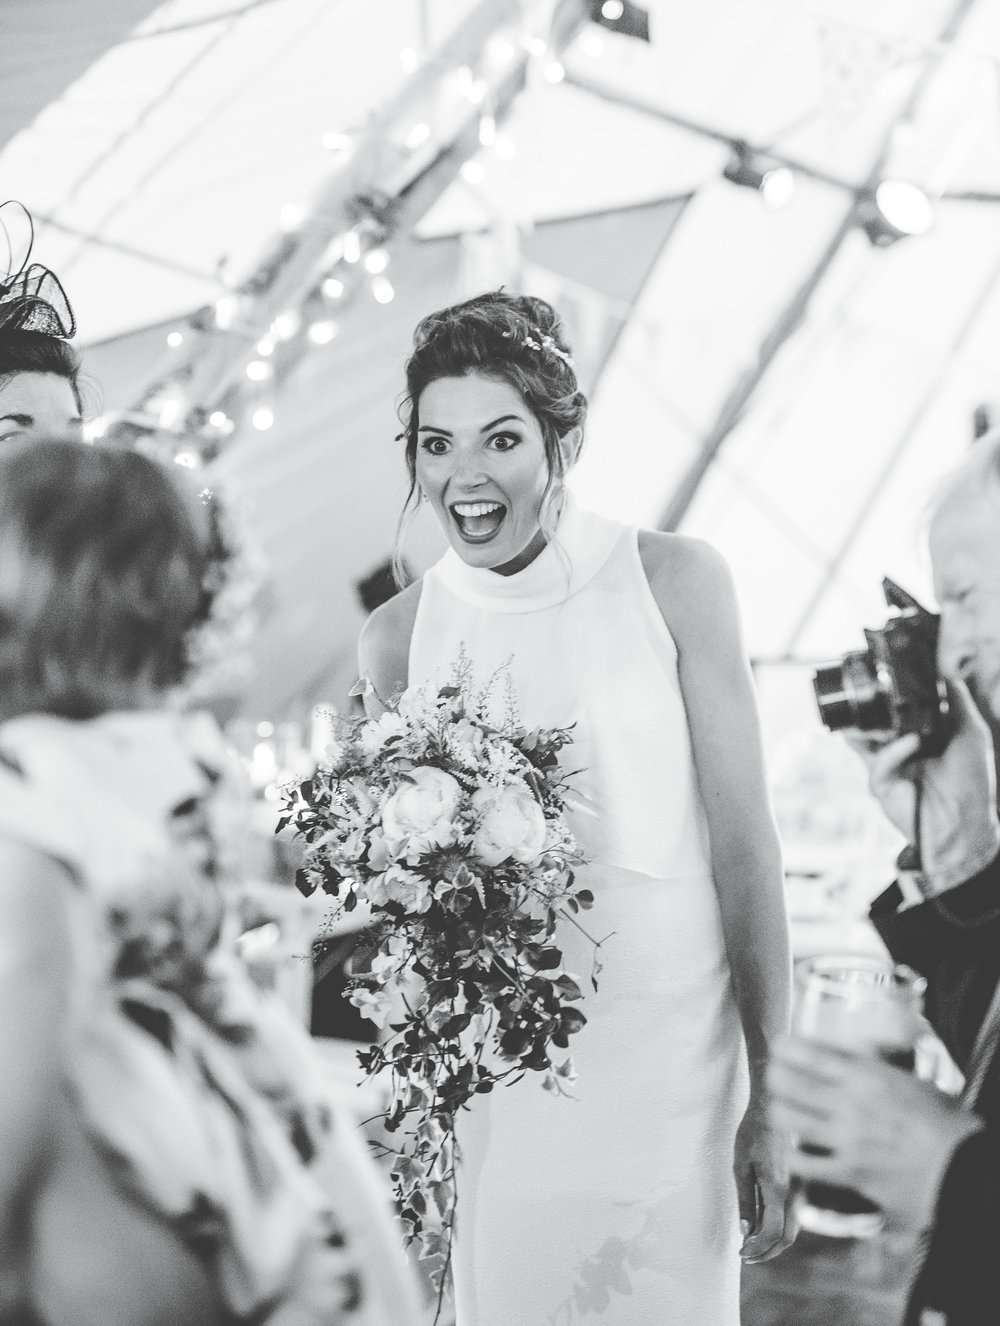 fun and creative wedding photography - bride laughing with guests in the tipi